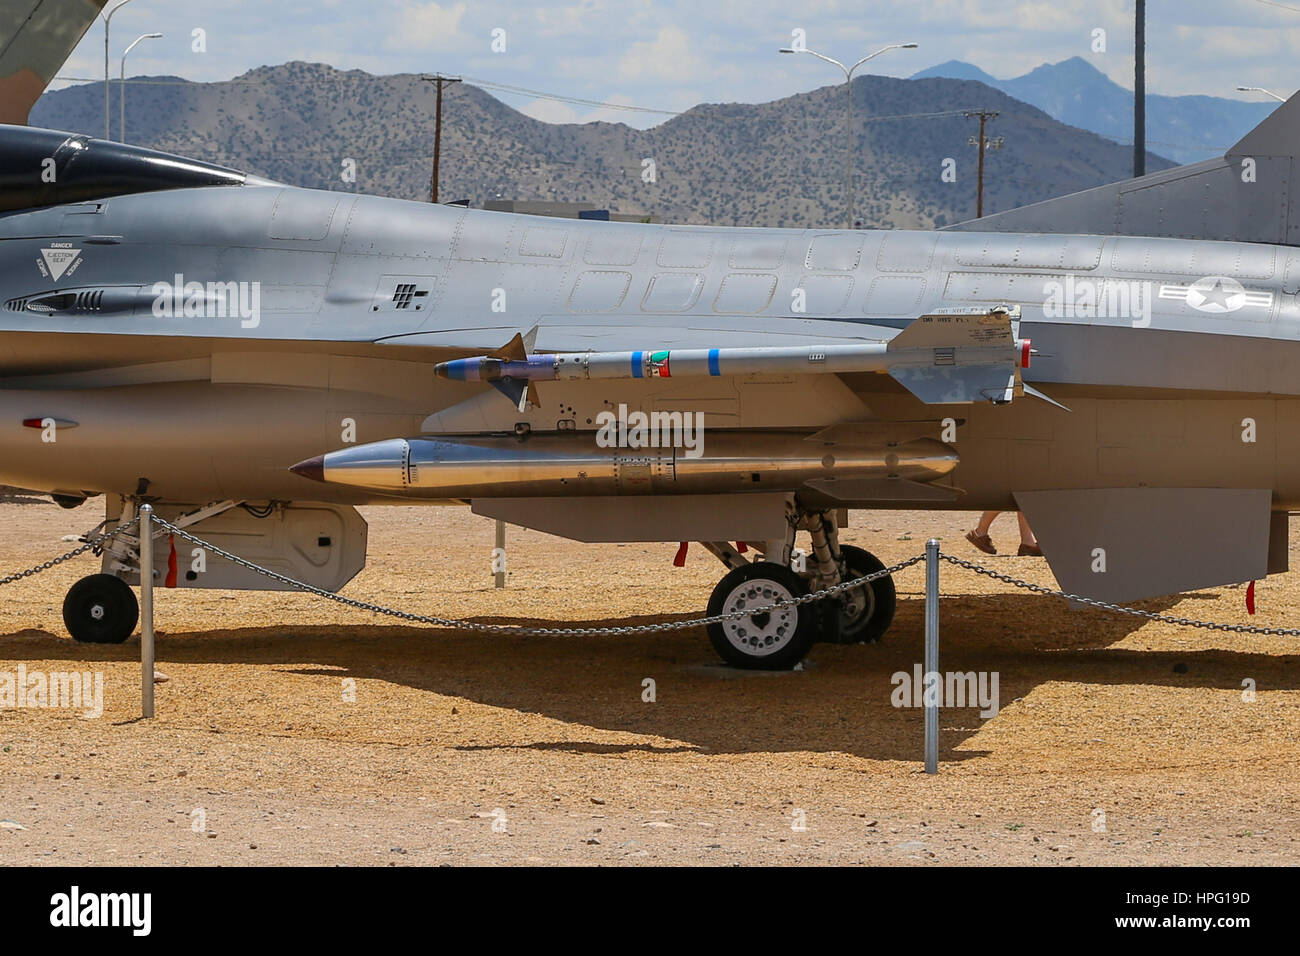 F-16 fighter loaded with Inert AIM-9 missile and B-61 nuclear bomb at National Museum of Nuclear Science & History - Stock Image